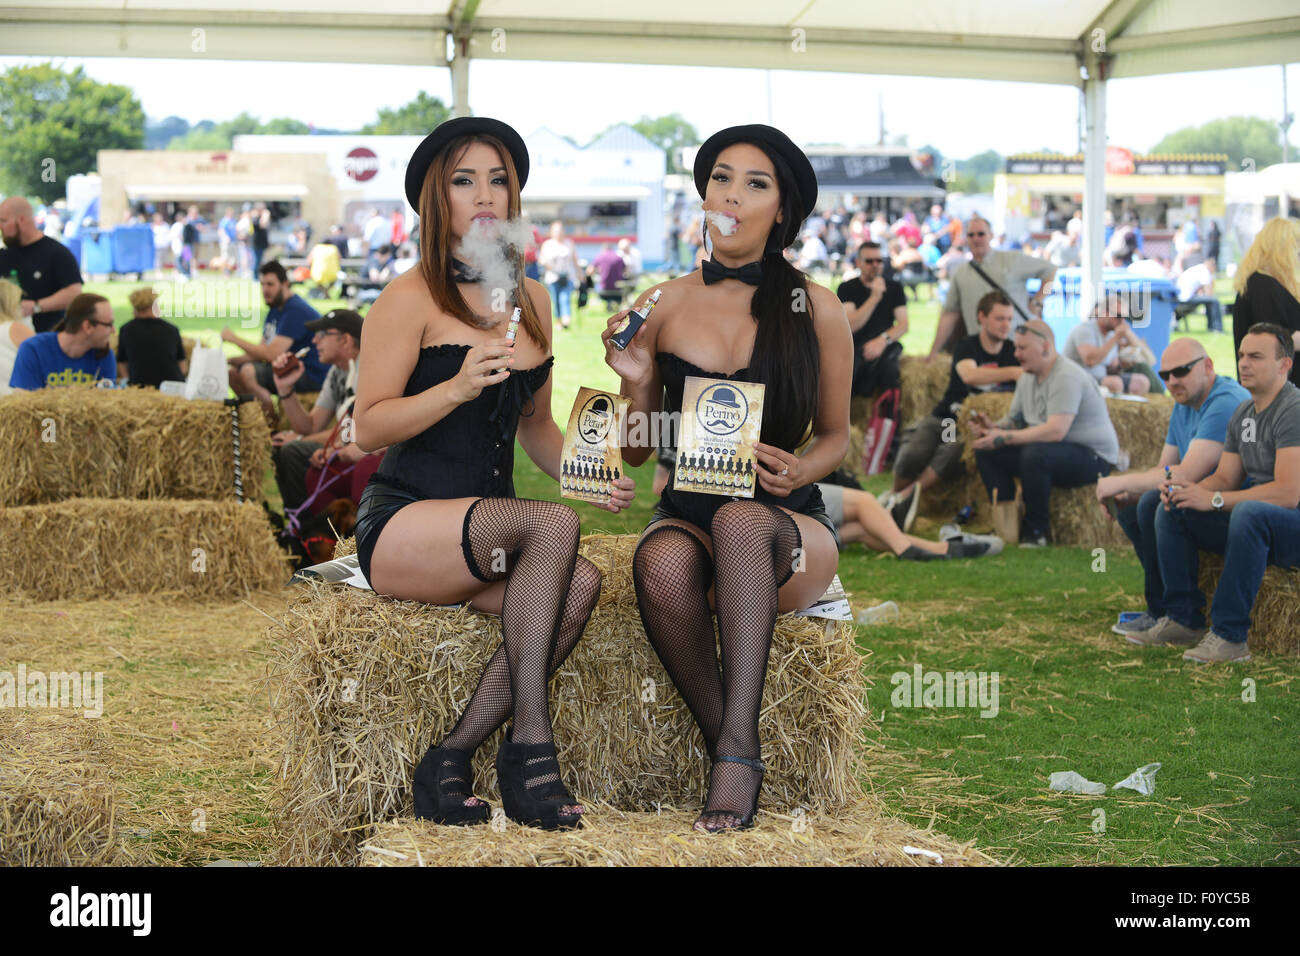 Models vaping electronic cigarette e-cigarette at Uk Vapefest 2015 while marketing Perino hand crafted e-liquid - Stock Image